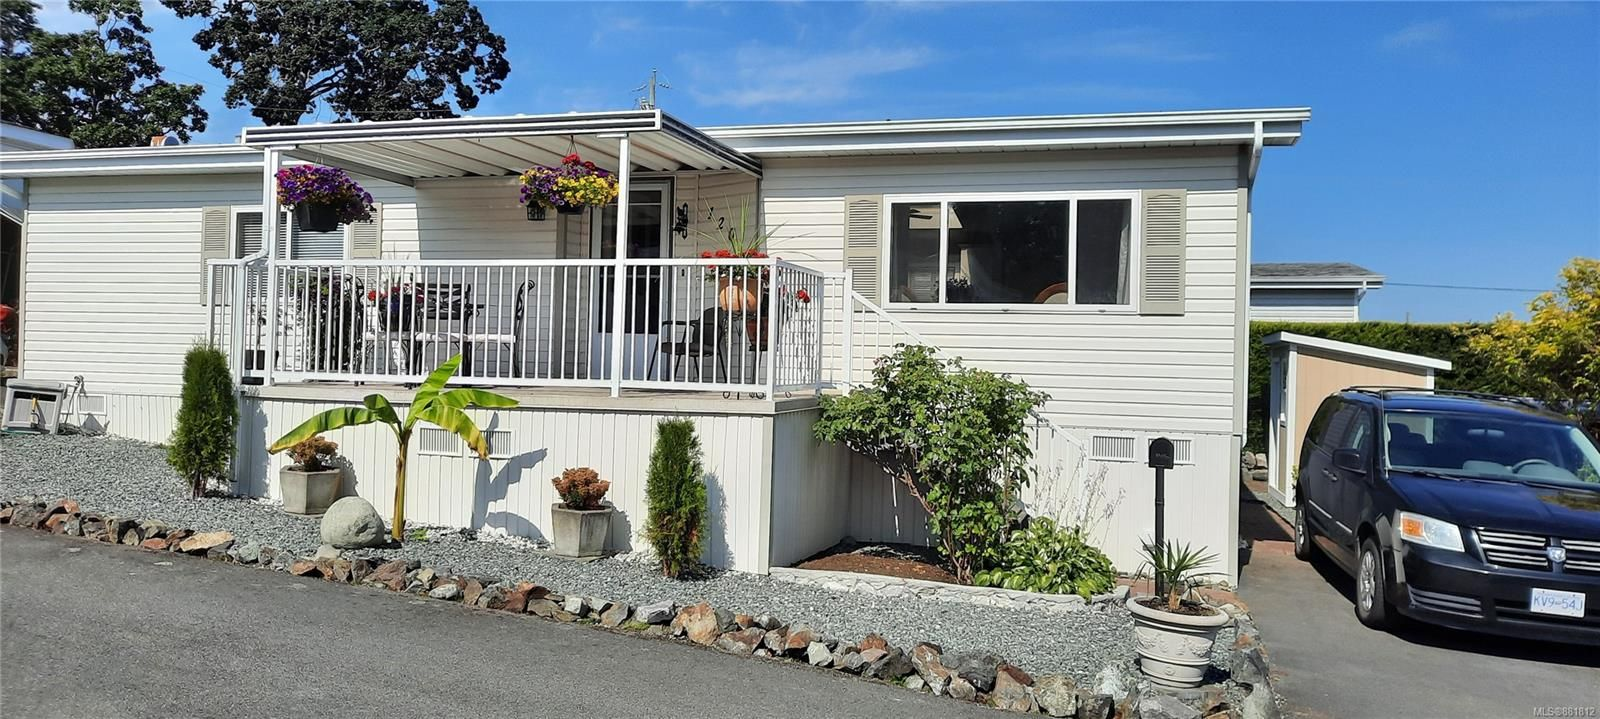 Main Photo: 120 13 CHIEF ROBERT SAM Lane in : VR Glentana Manufactured Home for sale (View Royal)  : MLS®# 881812